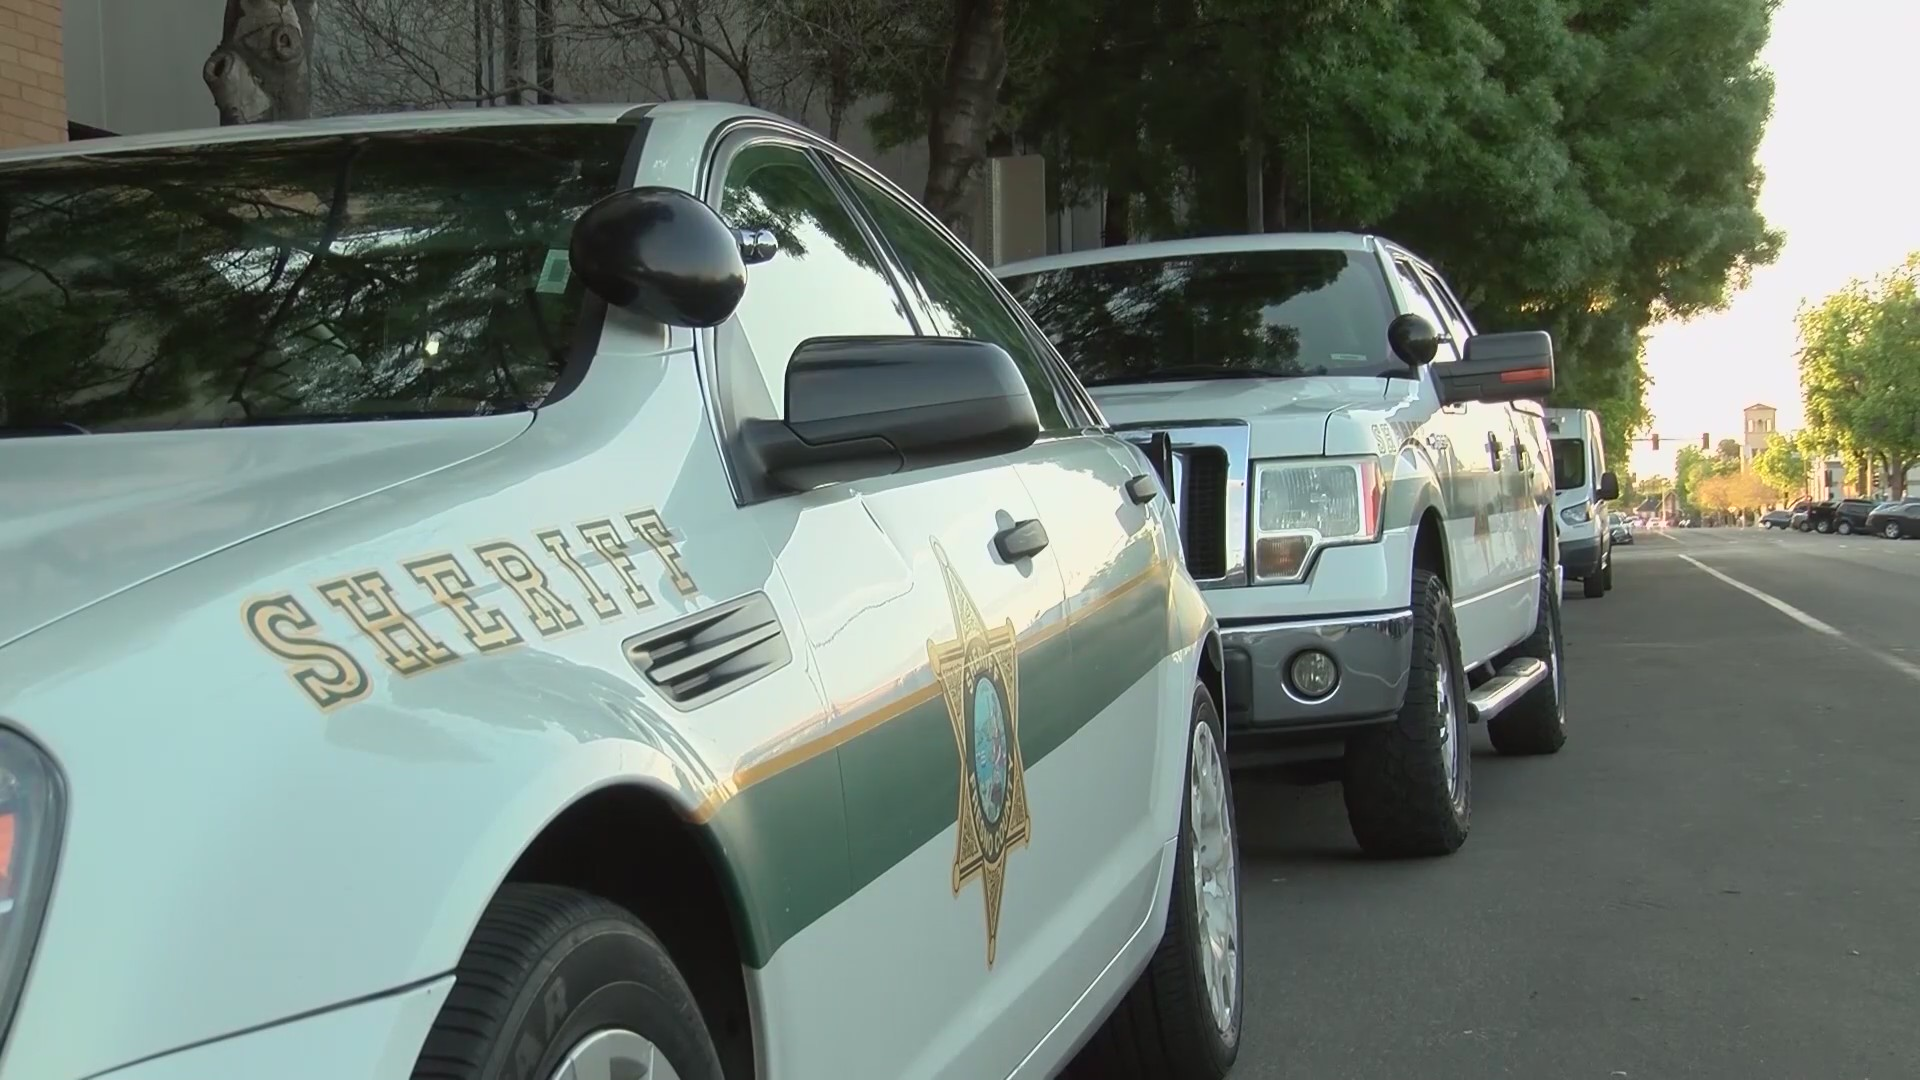 Fresno County Sheriff's Office vehicles